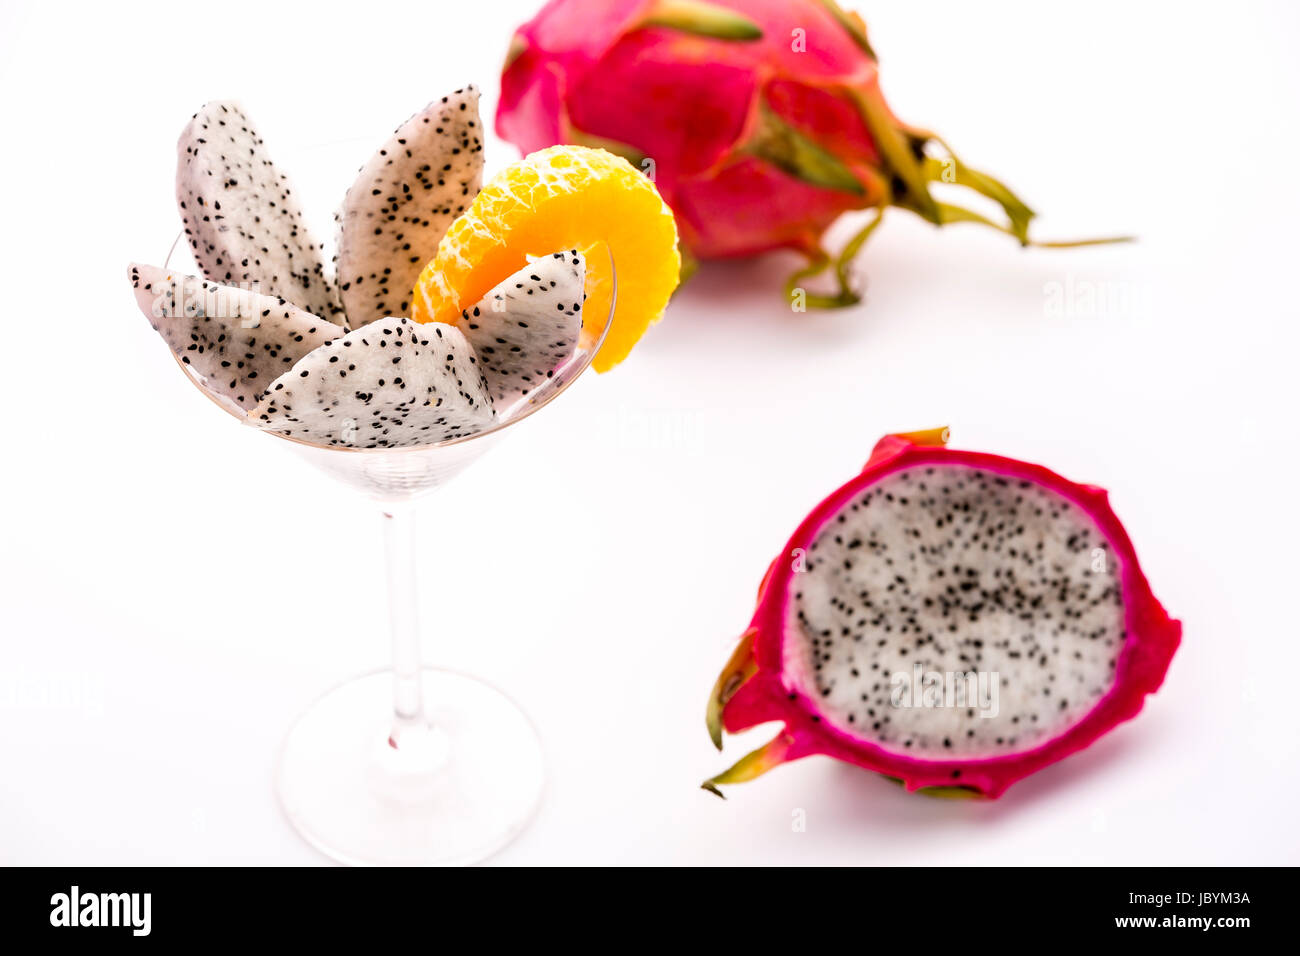 White pulp of half a pitaya cut into wedges and presented in a glass. The decorative mandarine slice is also complementing - Stock Image